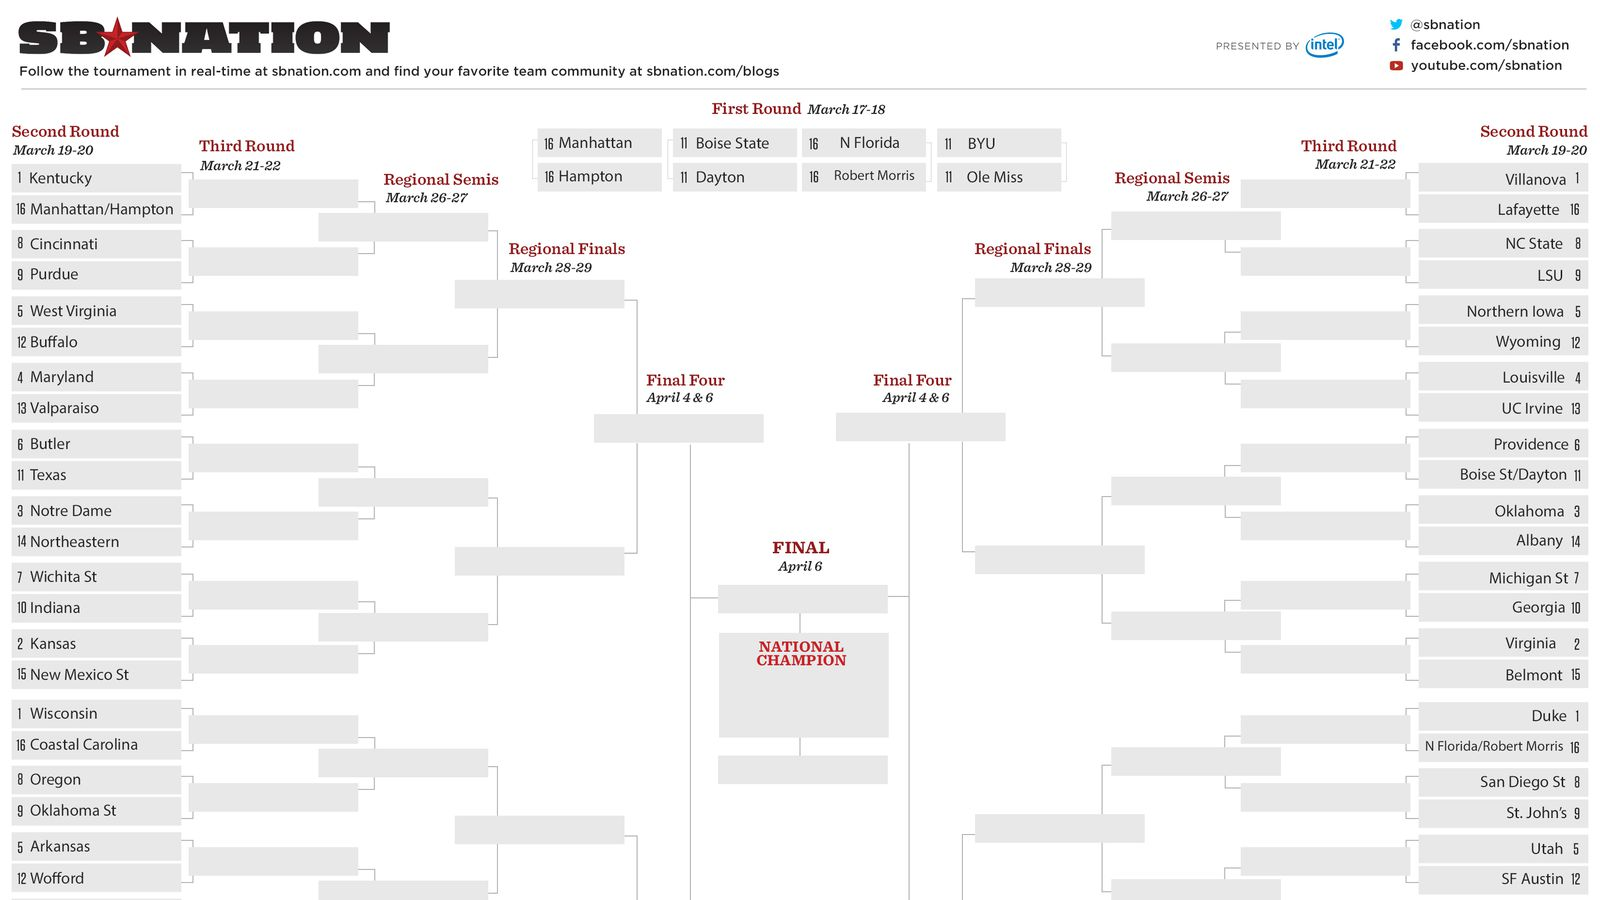 Tournament Bracket Templates For Excel 2015 March Madness Bracket ...